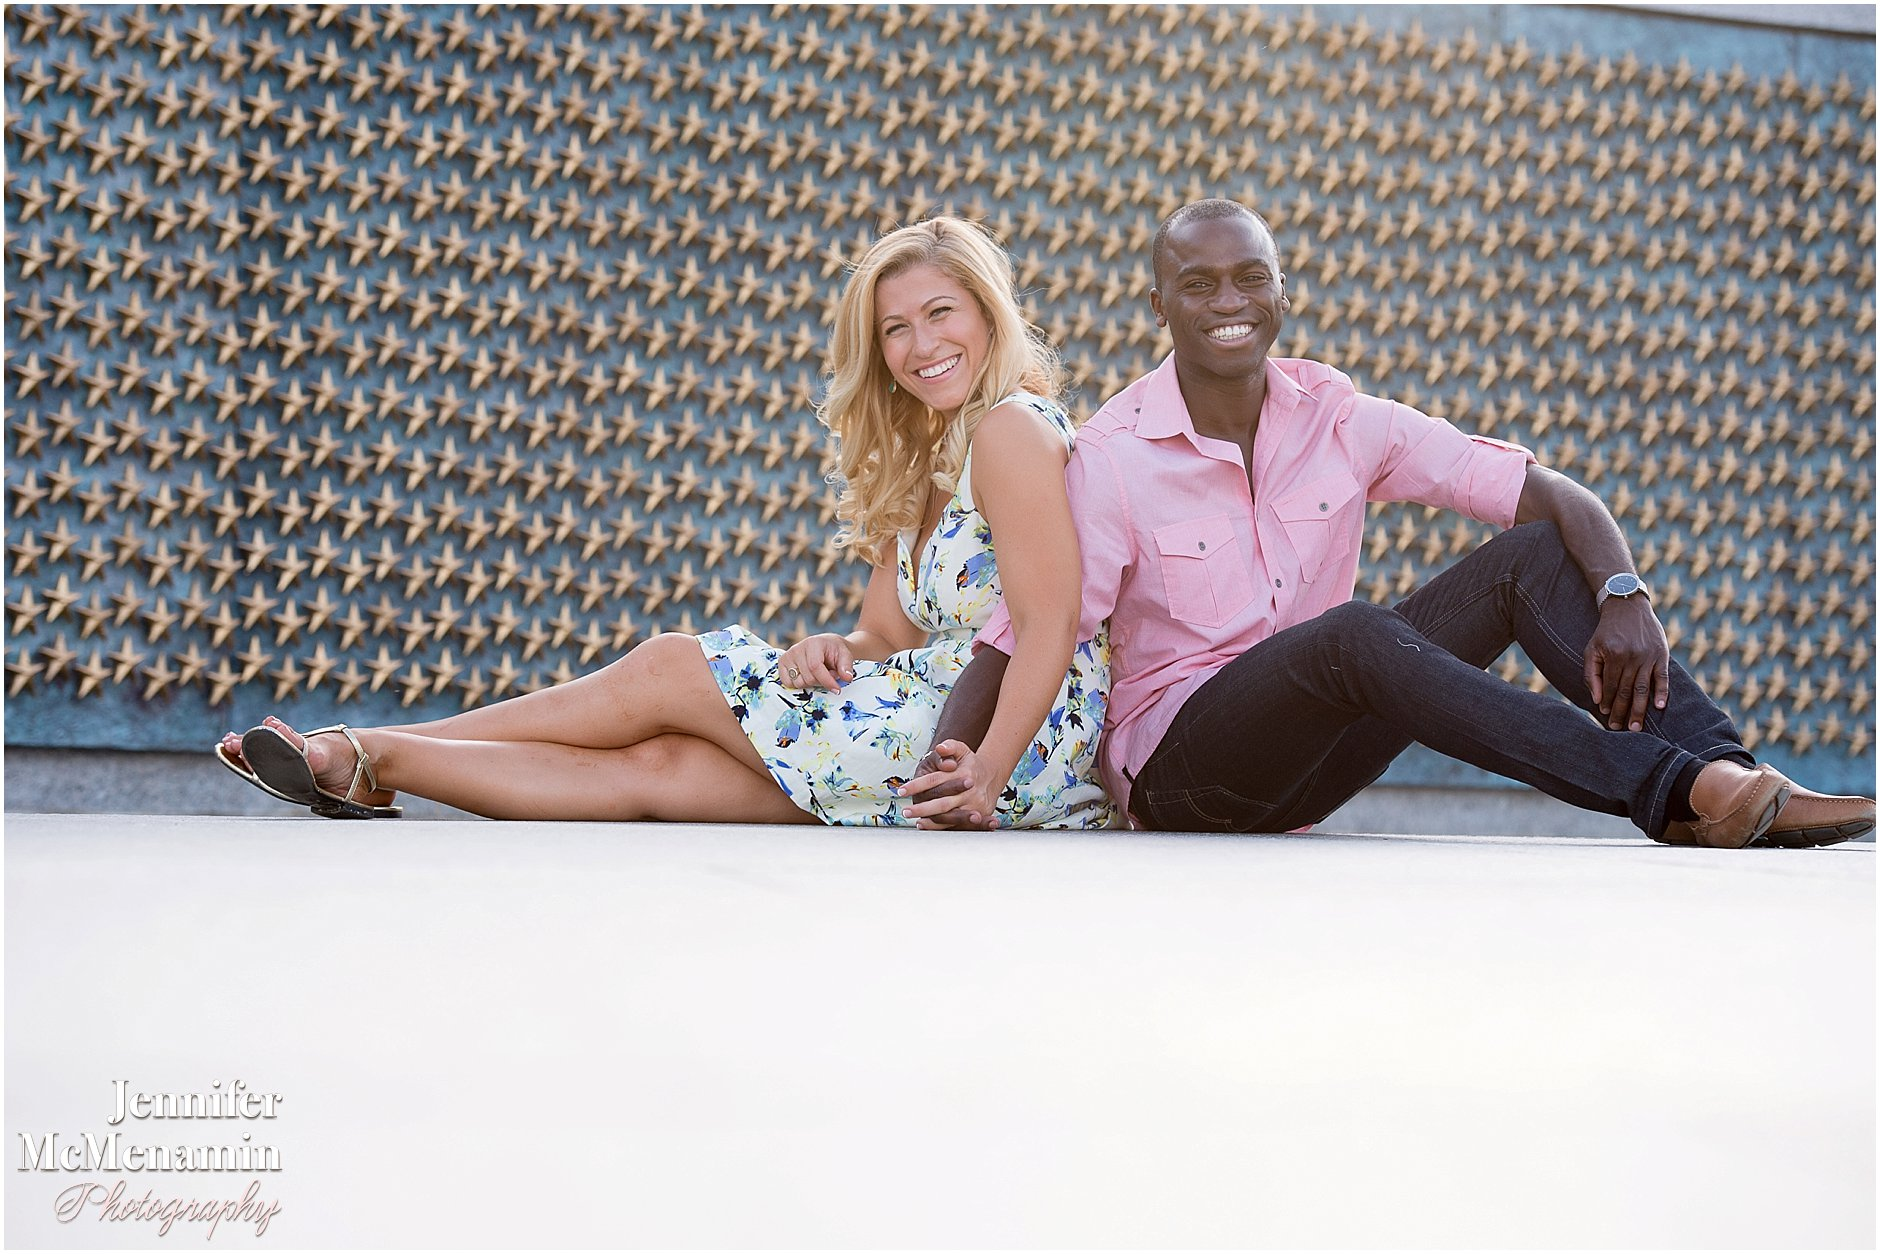 292-FrammAgorsor_00731-0126_Jennifer-McMenamin-Photography-DC-Engagement-photos